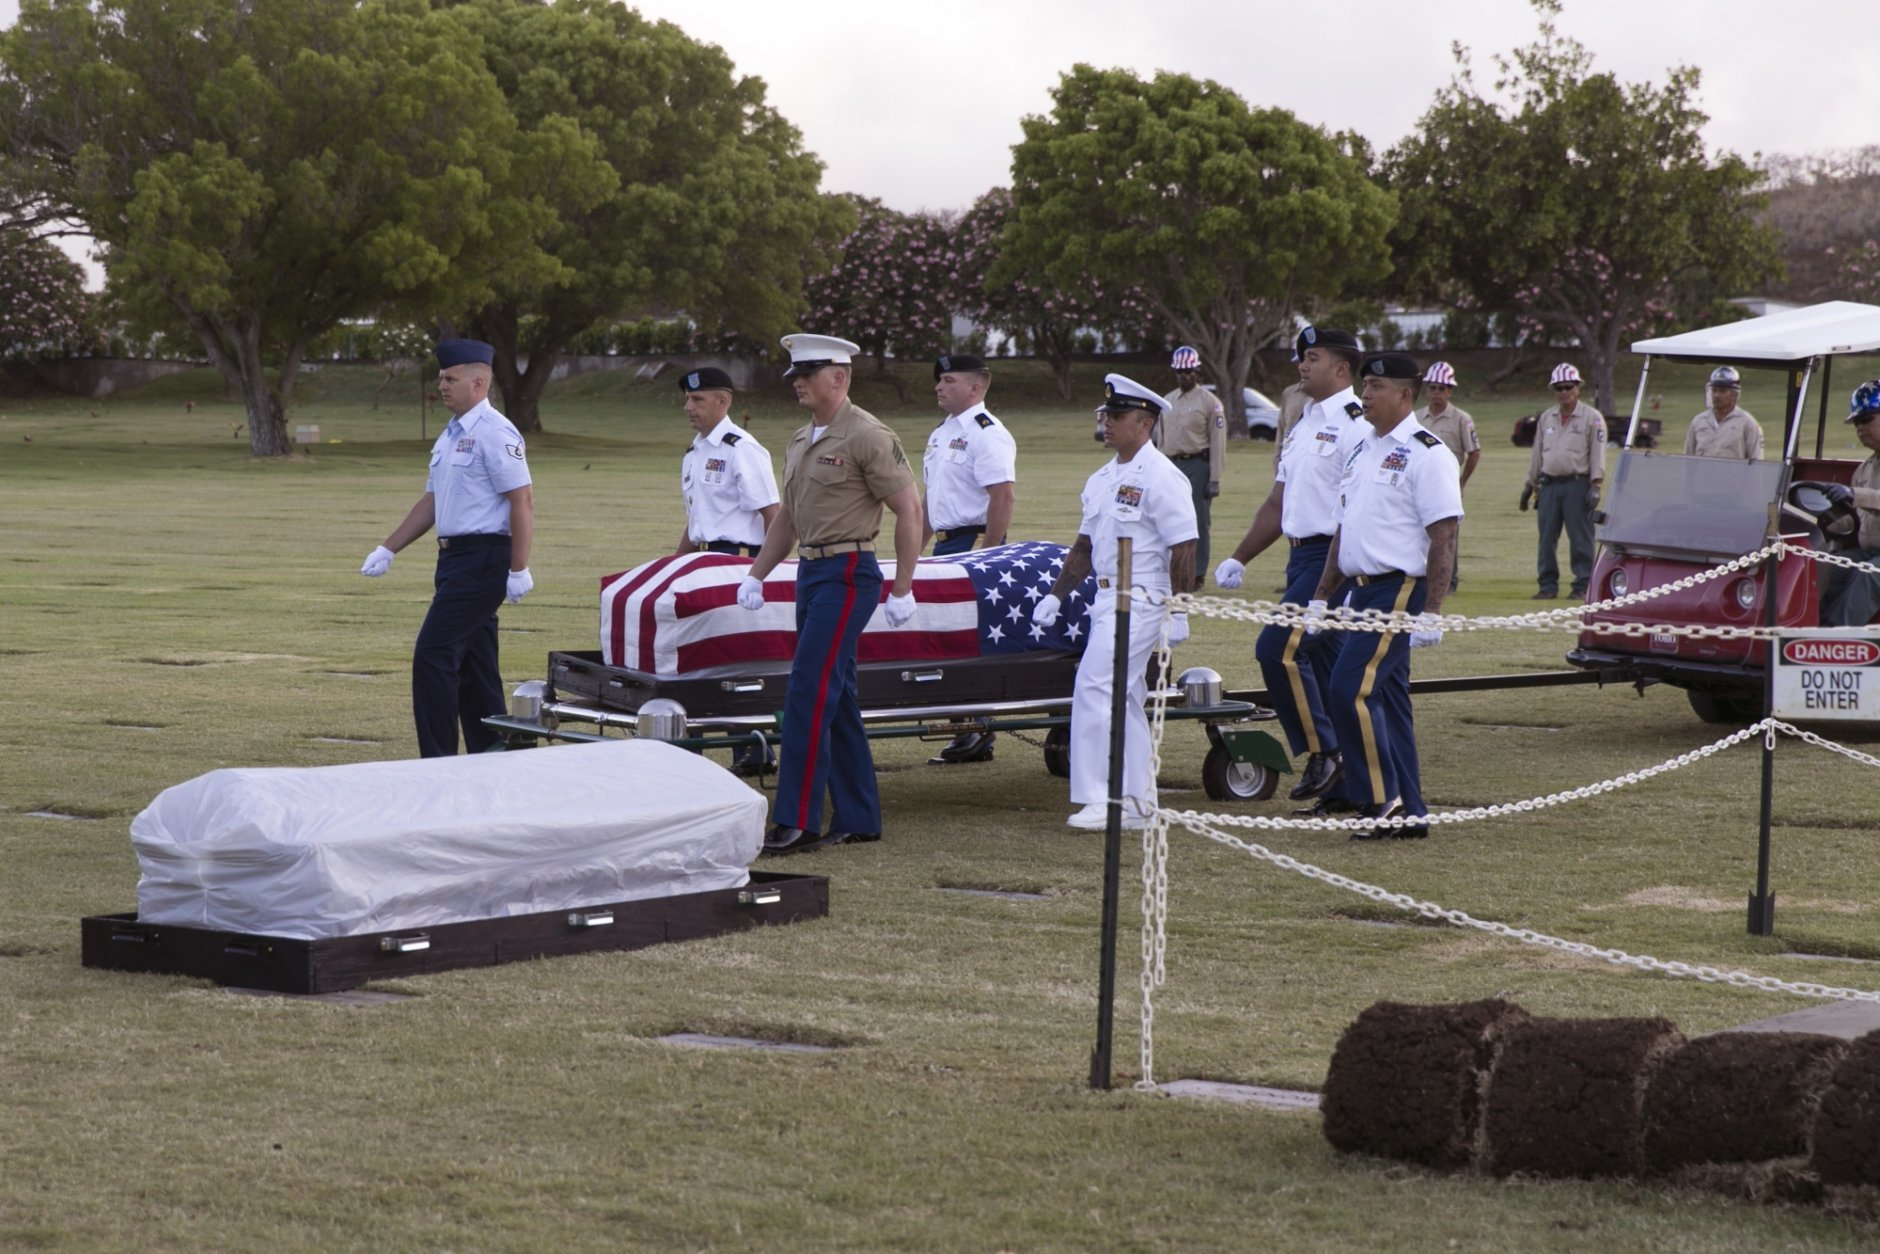 FILE - In this July 27, 2015 file photo, military pallbearers escort the exhumed remains of unidentified crew members of the USS Oklahoma killed in the 1941 bombing of Pearl Harbor that were disinterred from a gravesite at the National Memorial Cemetery of the Pacific in Honolulu. More than 75 years after the Japanese attack killed nearly 2,400 in Hawaii, the bodies of some sailors killed at Pearl Harbor are finally being laid to rest in their hometowns across the U.S. After DNA allowed the men to be identified and returned home, their remains are being buried in places such as Traer, Iowa and Ontonagon, Michigan.  (AP Photo/Marco Garcia, File)